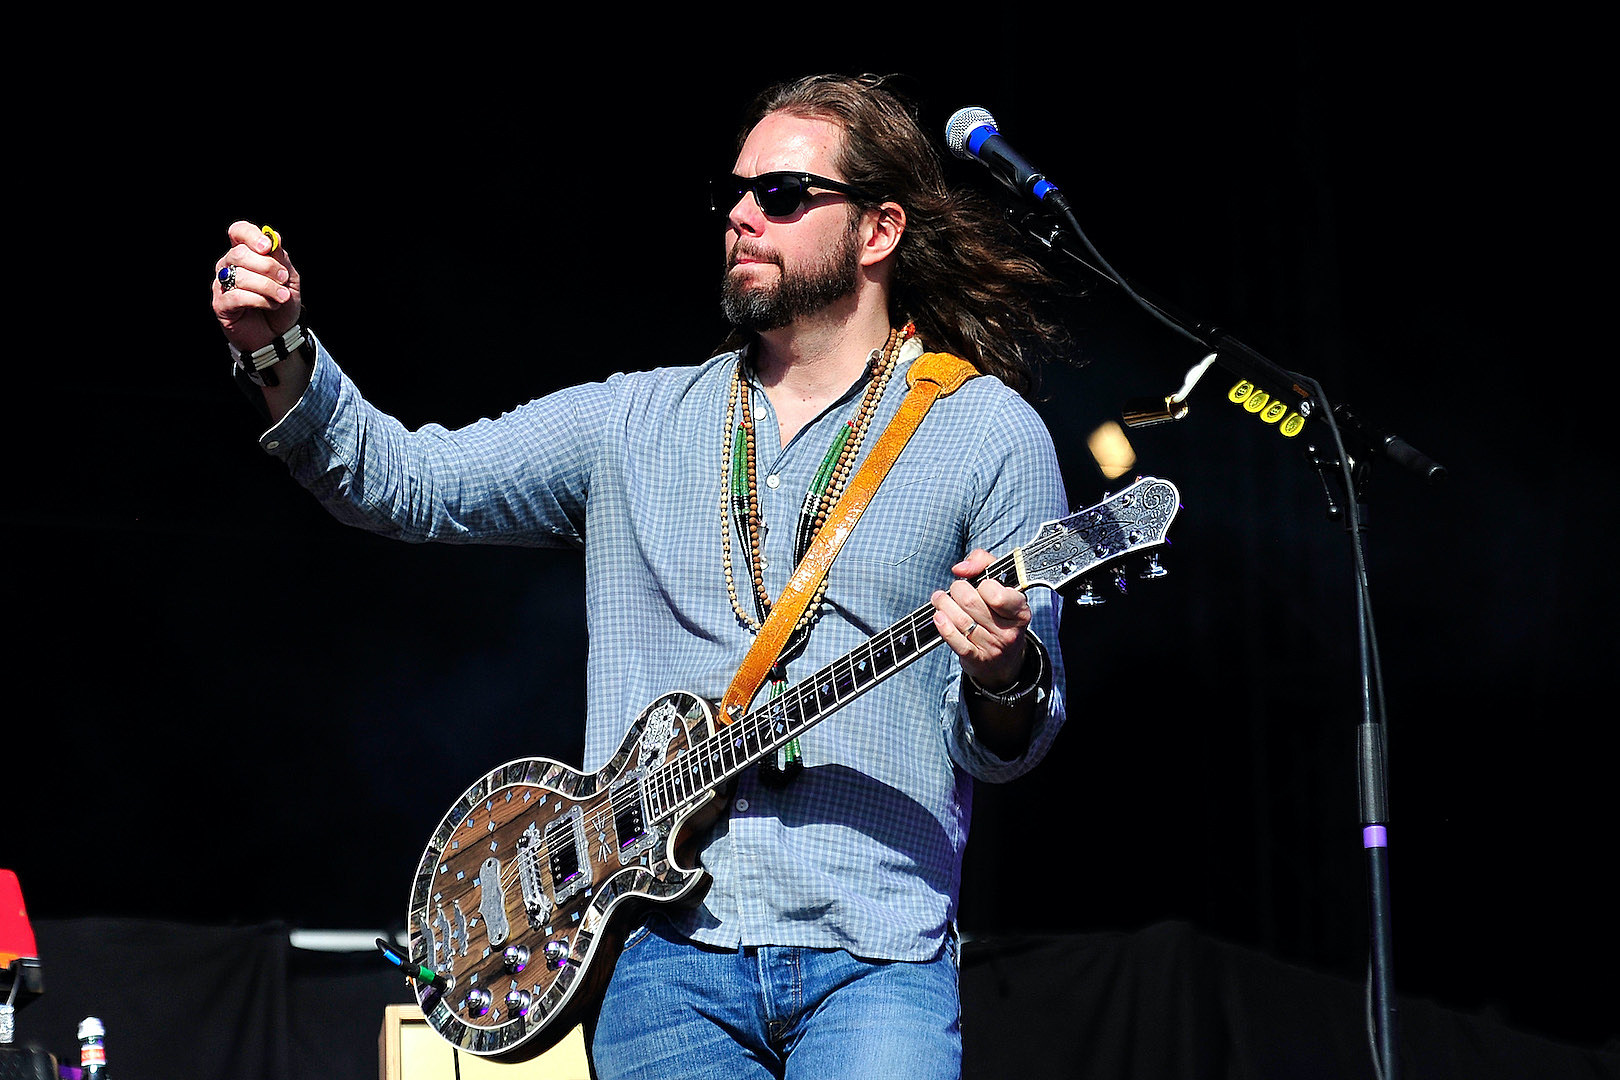 The Black Crowes' Rich Robinson: 'Toxic' Lineup Situation Led to Band Starting Anew